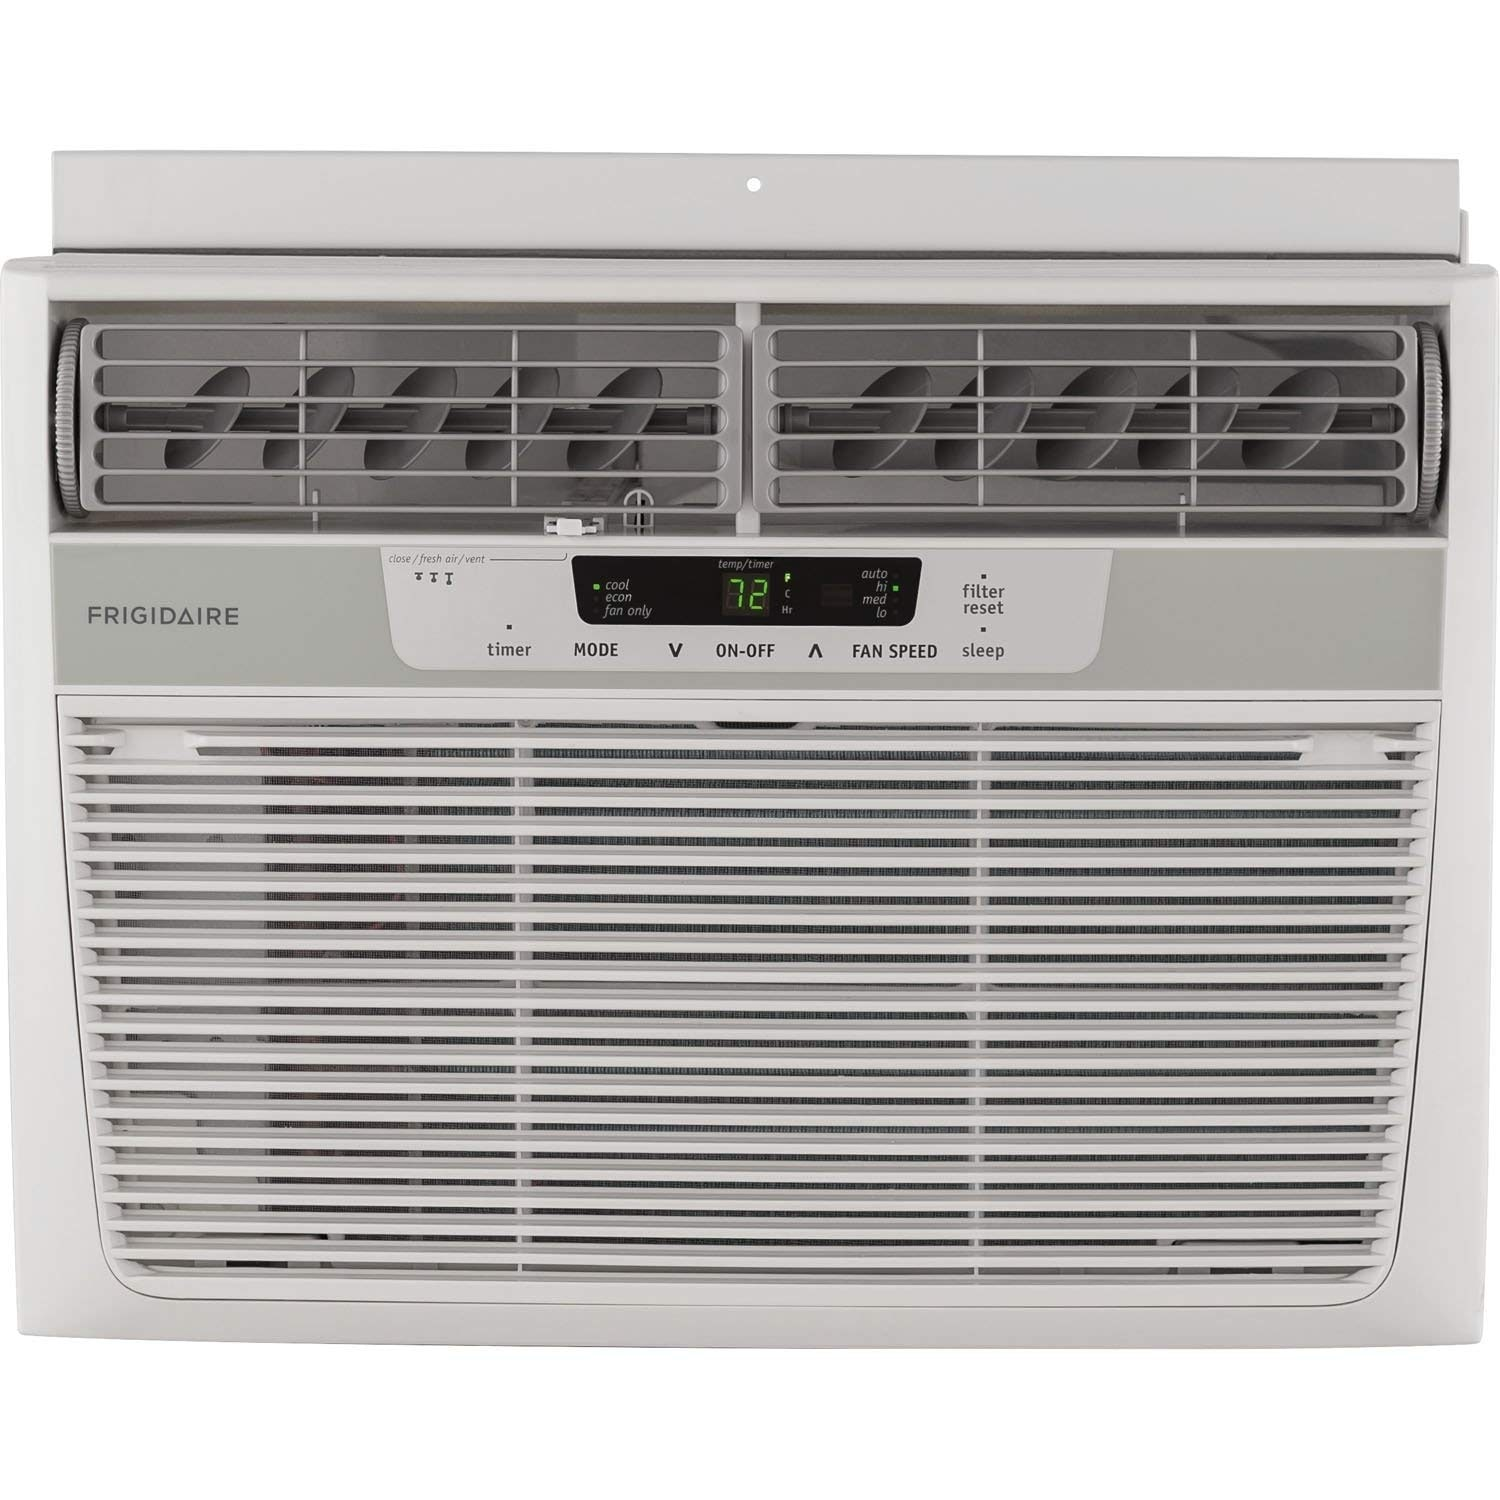 Frigidaire FFRA1022R1 Frigidaire Air Conditioner Compact Electronic With Remote